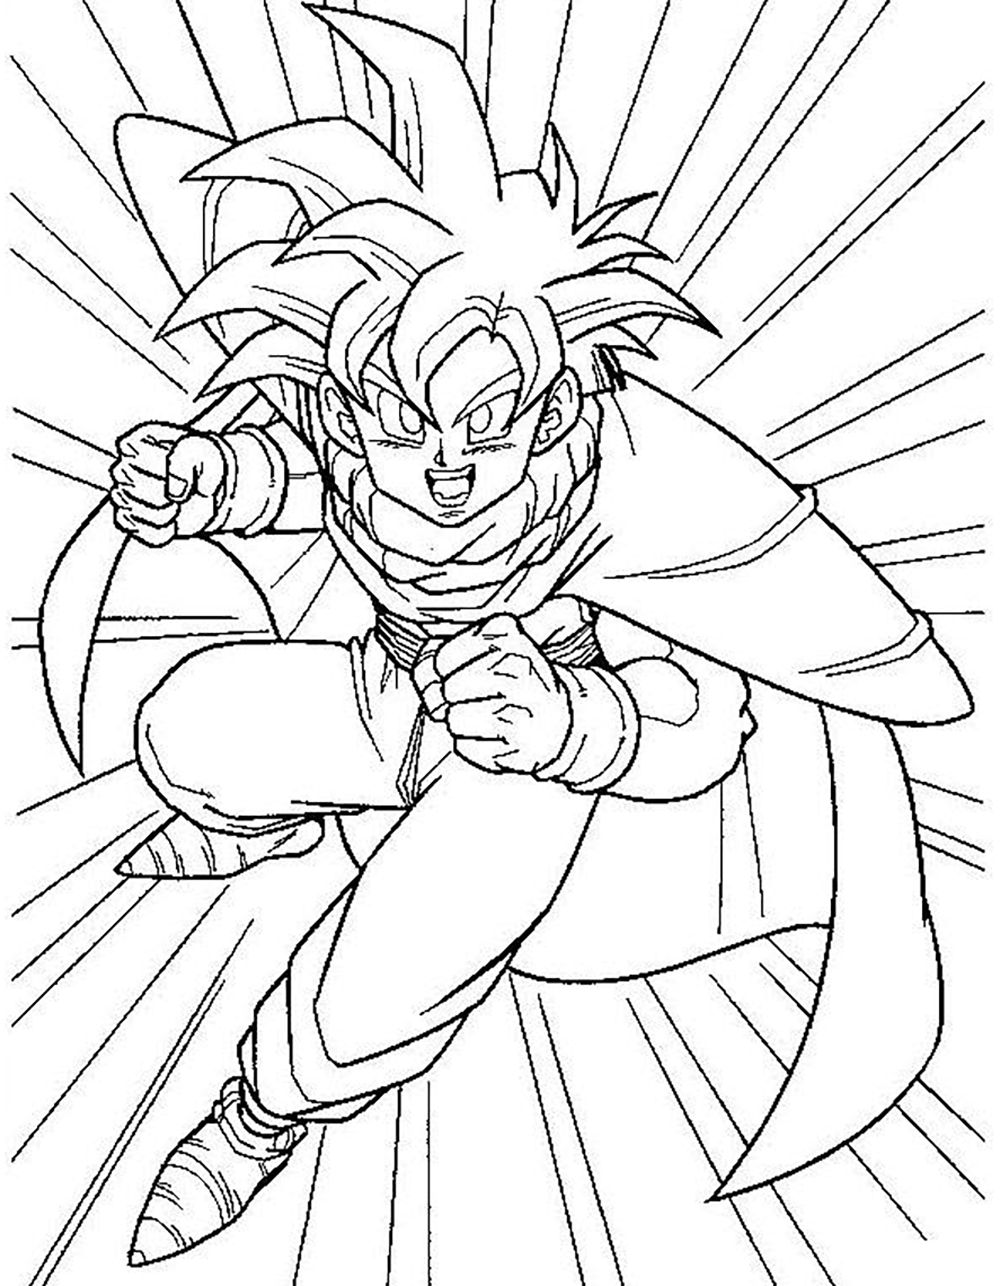 coloring pictures dragon ball z dragon ball coloring pages best coloring pages for kids ball coloring dragon z pictures